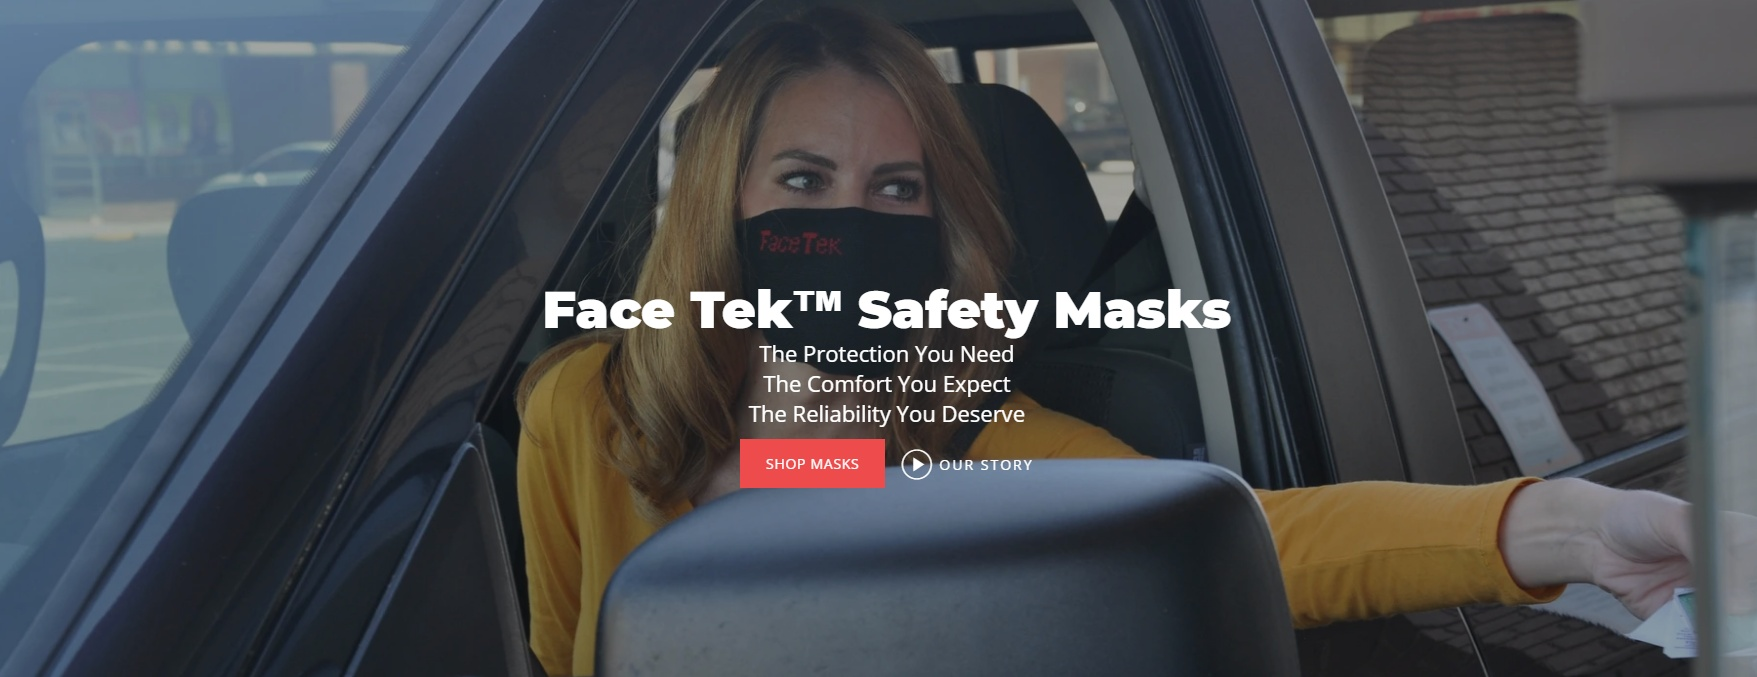 Face Tek Partner Program